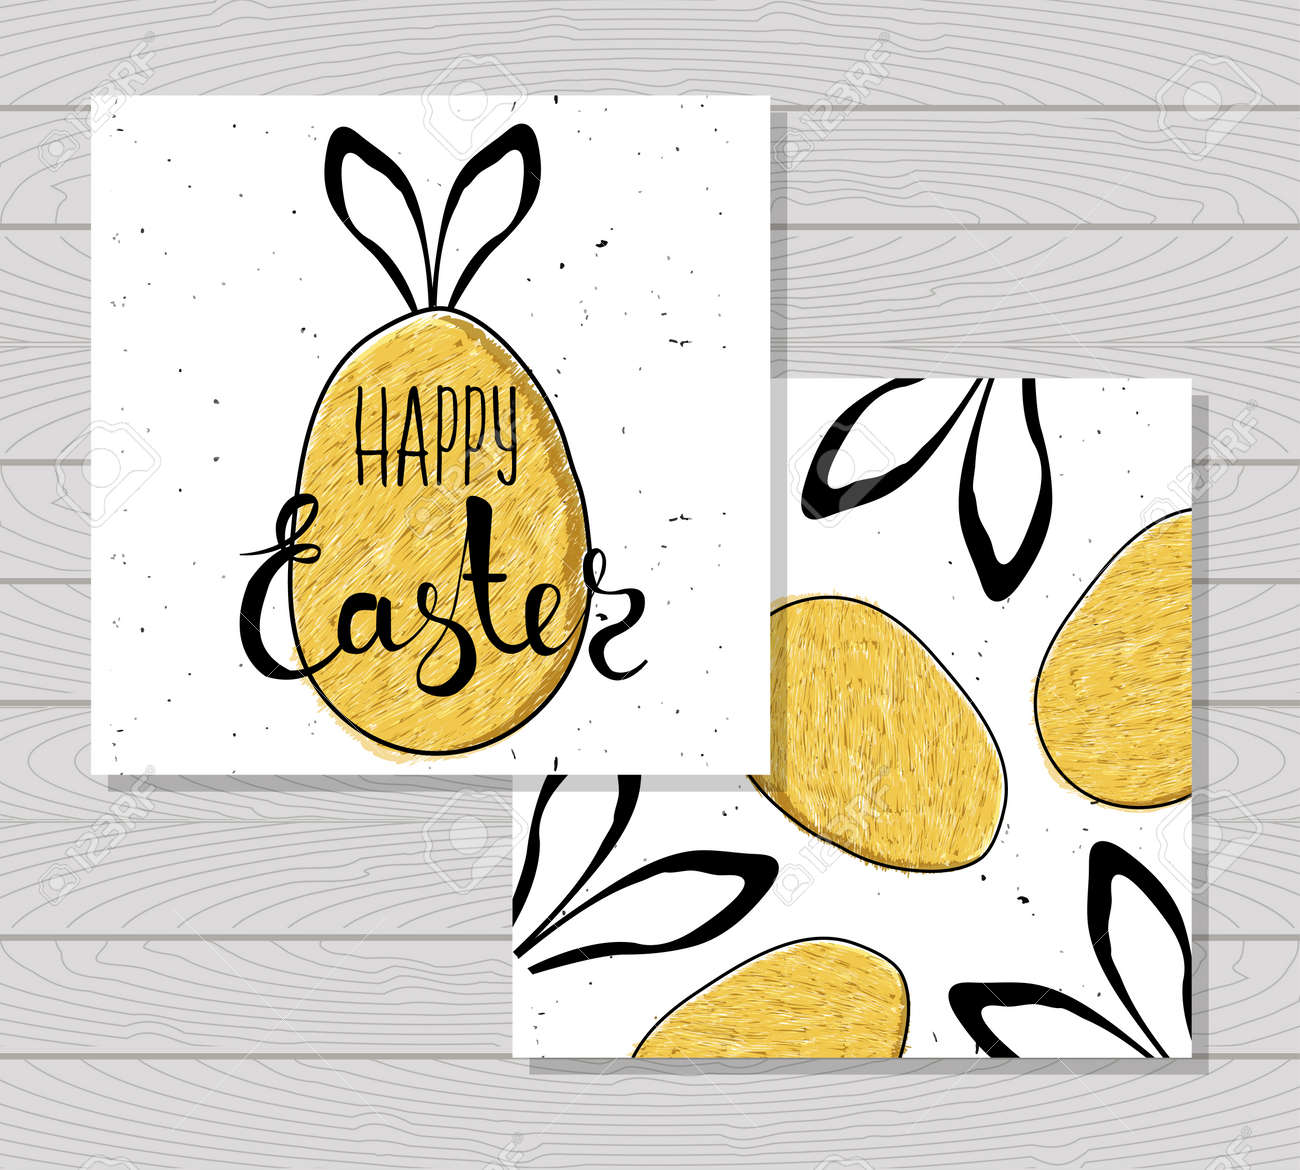 Colorful Printable Card For Easter With Eggs And Rabbit Ears On Wooden Background Vector